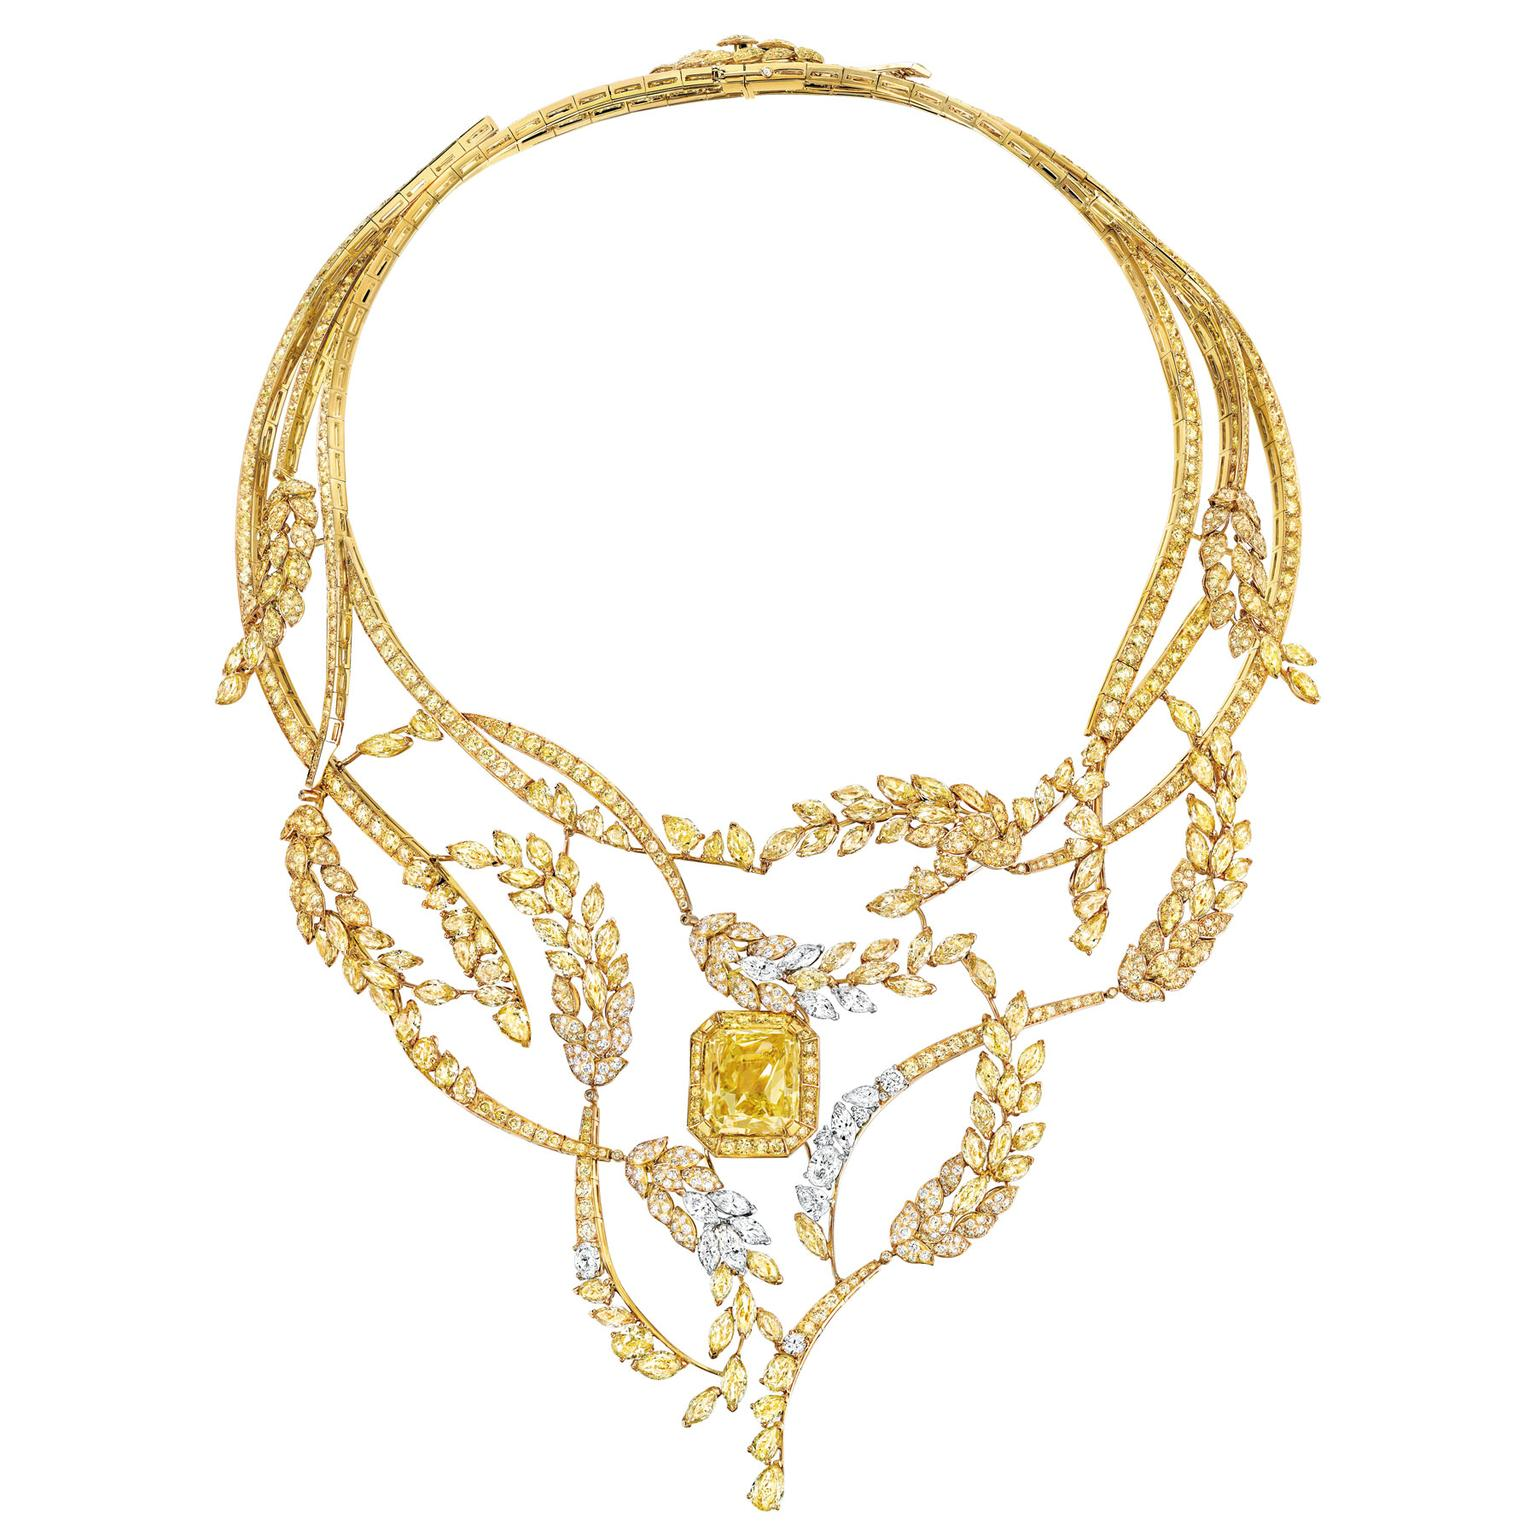 Chanel Les Blés Fete des Moissons yellow diamond necklace